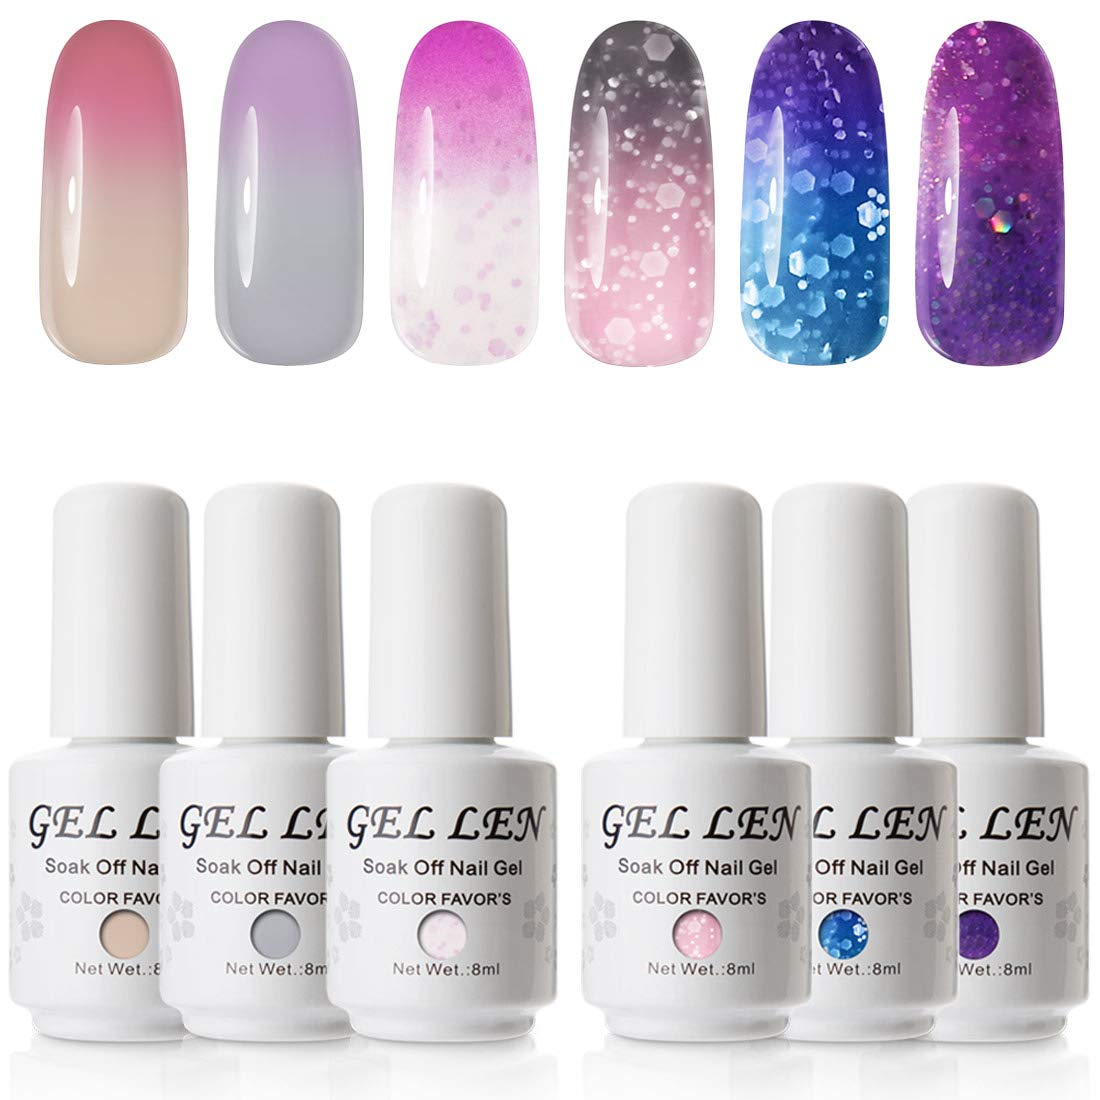 Gellen Gel Nail Polish Set - Color Changing Temperature Gel Series Pure Glitters Sparkle 6 Colors, Trendy Fun Nail Art Colors Home Manicure Nail Gel Kit